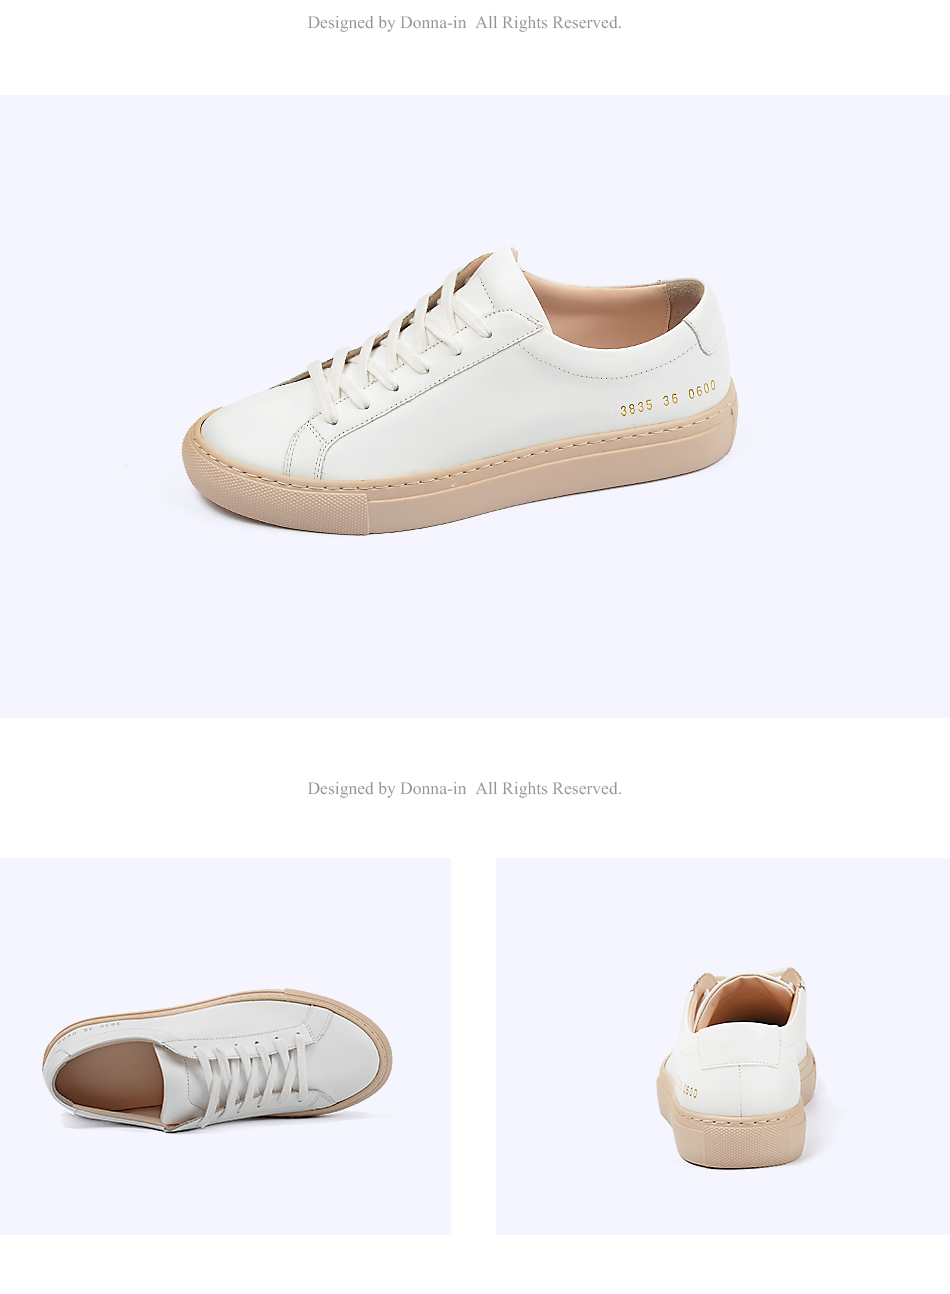 Donna-in Sneakers Women Genuine Leather Flat Low Heel Platform Ladies Lace Up Fashion Breathable Shoes Women 2018 White Nude (3)